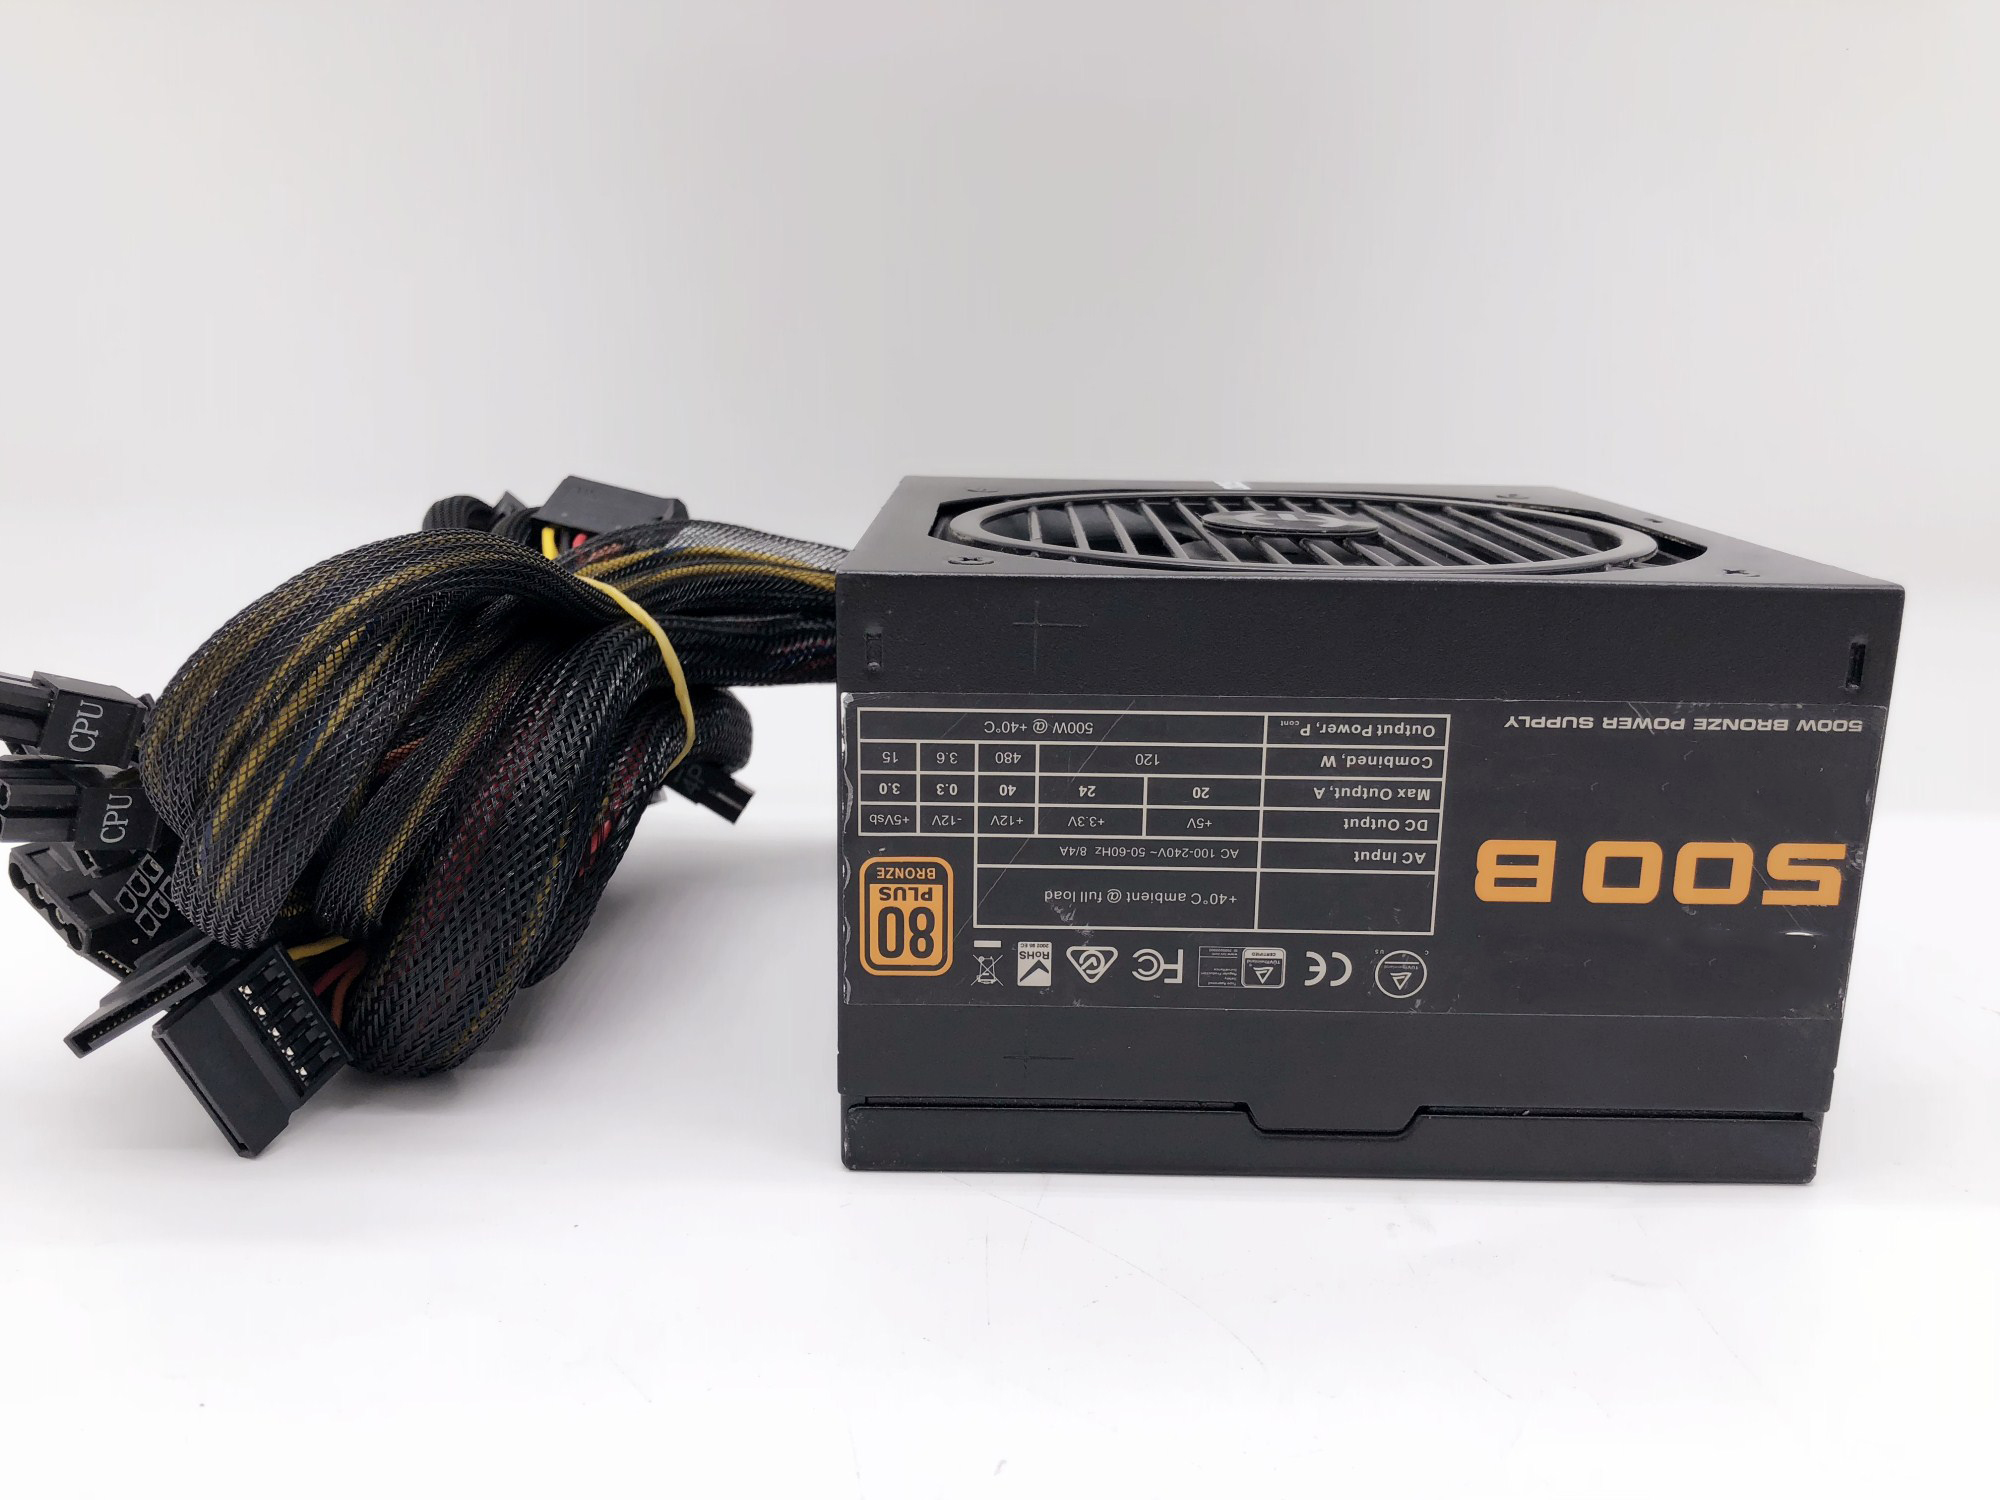 EVGA500B Rated 500w, 80PLUS Bronze Power Supply, Ultra-quiet Power Supply, Test Worked. Used Original